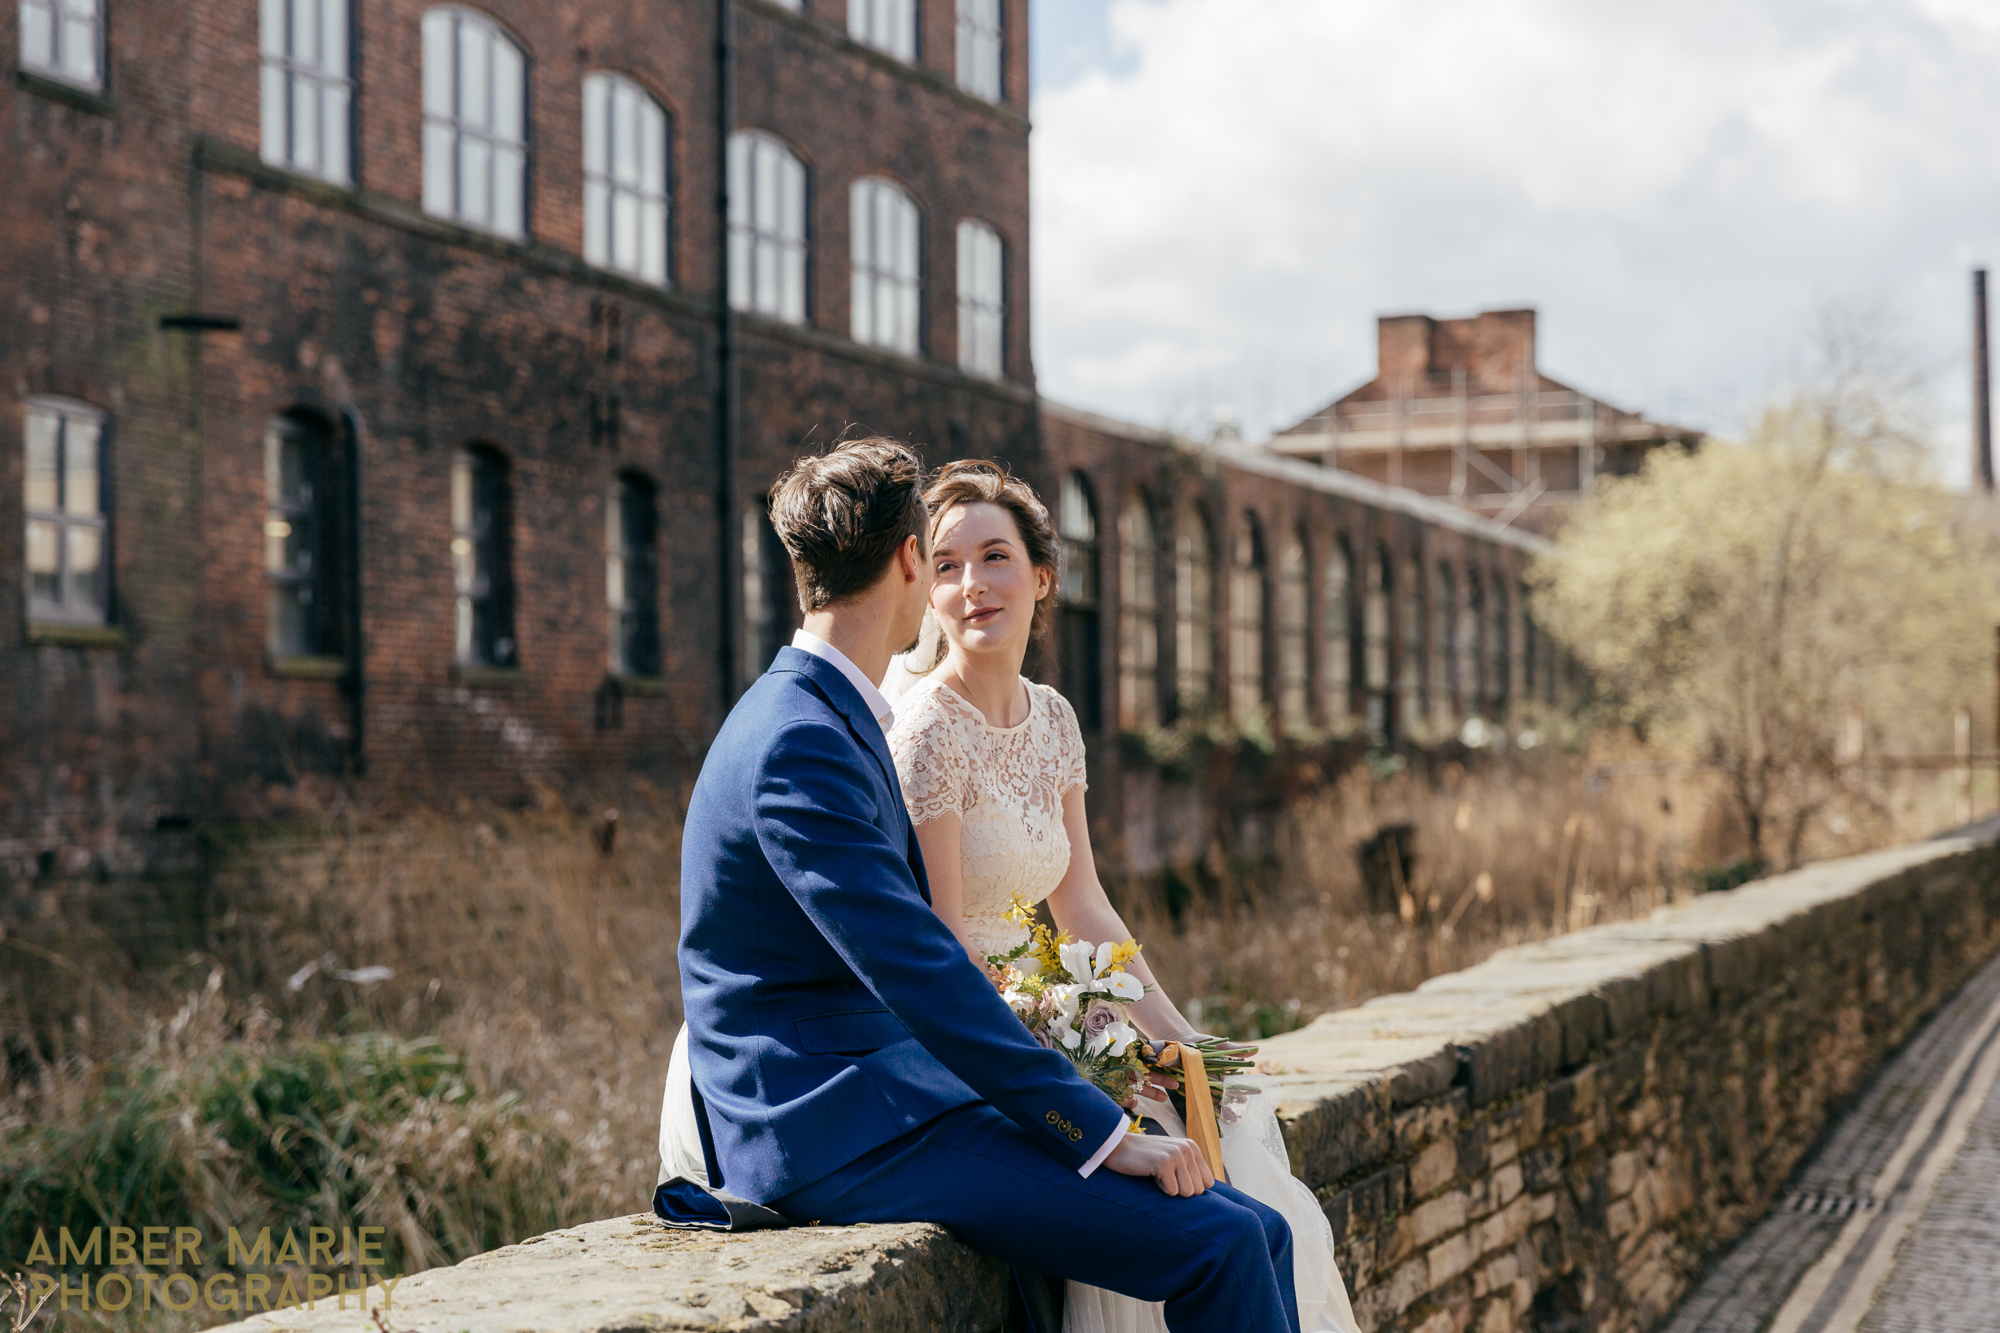 Creative and quirky wedding photography